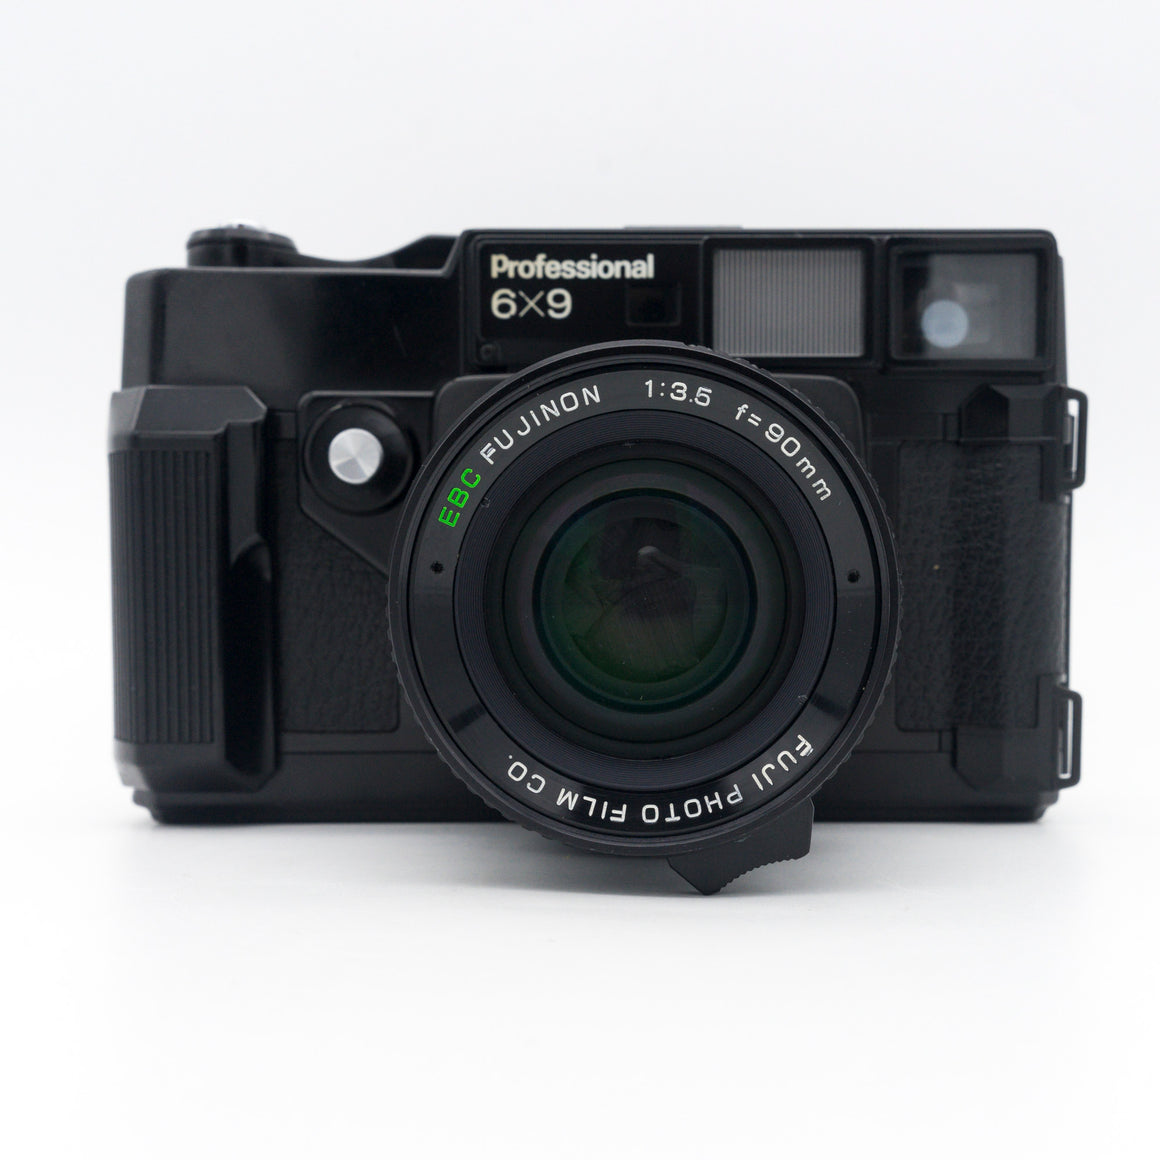 Fujica GW690 Professional 6x9 Medium Format Camera with Fujinon 90mm f/3.5 Lens